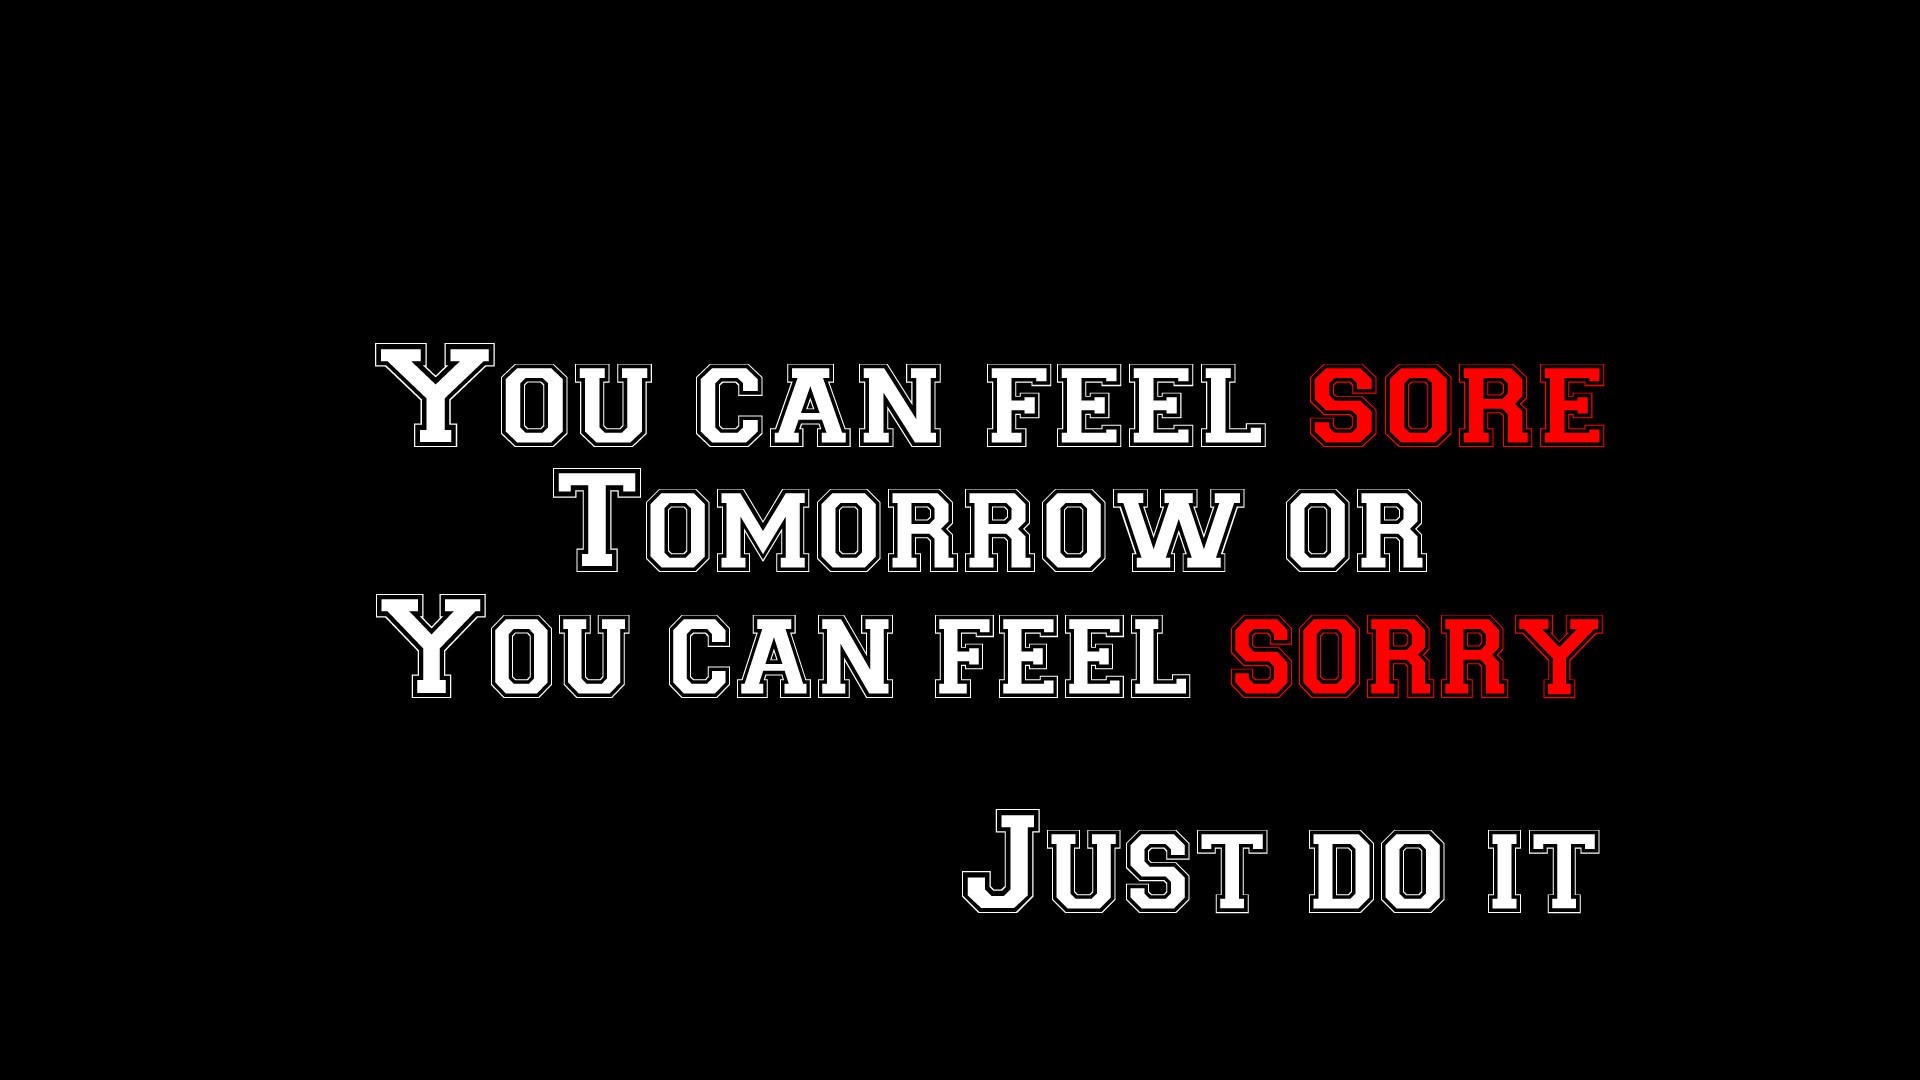 Fitness Motivational Quotes Wallpaper